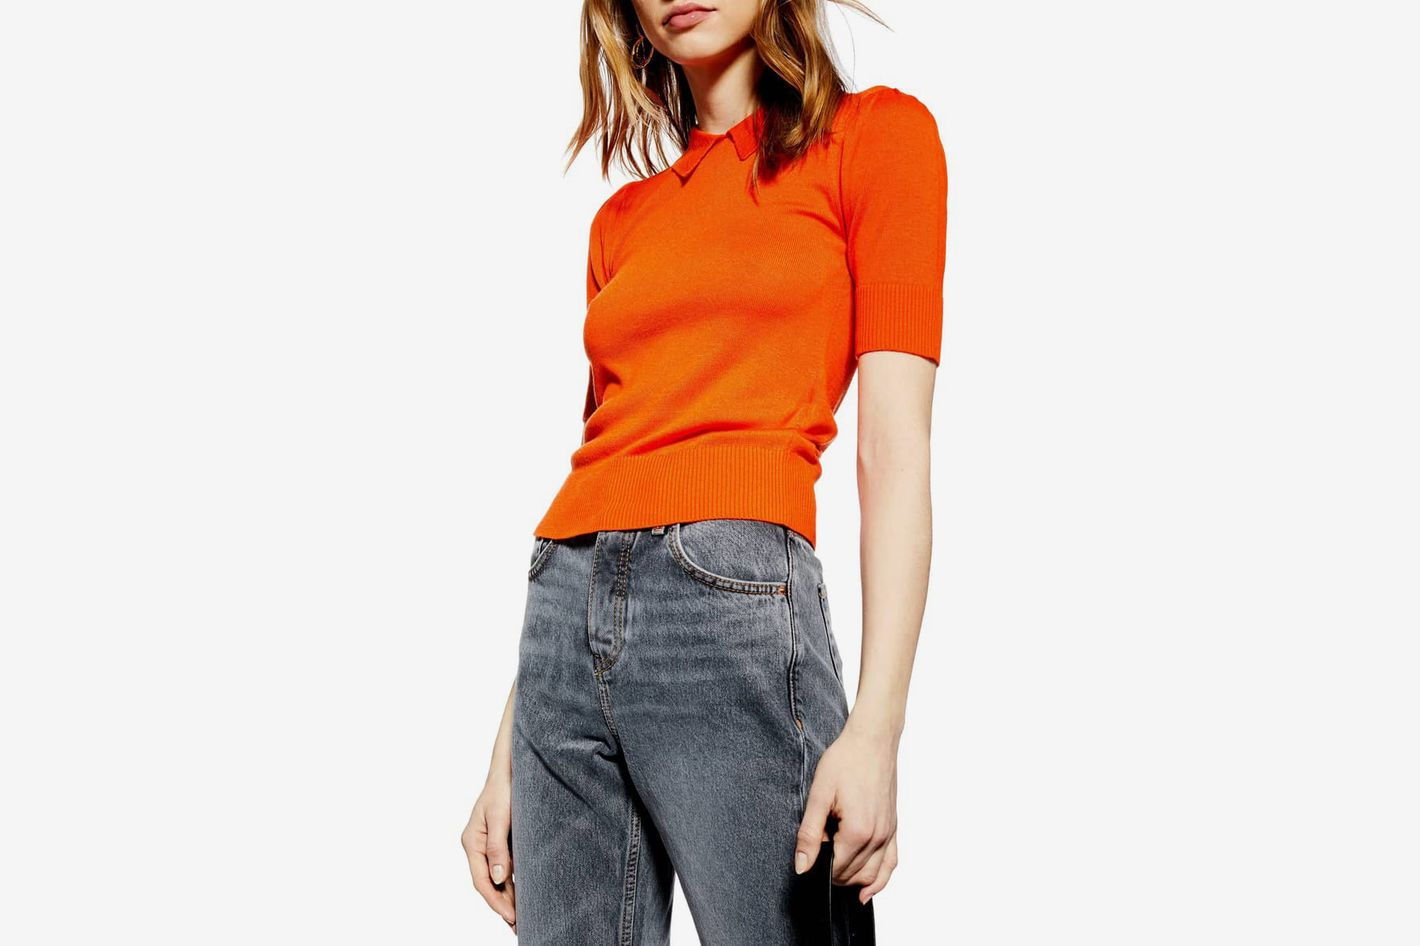 Topshop Polo Neck Sweater